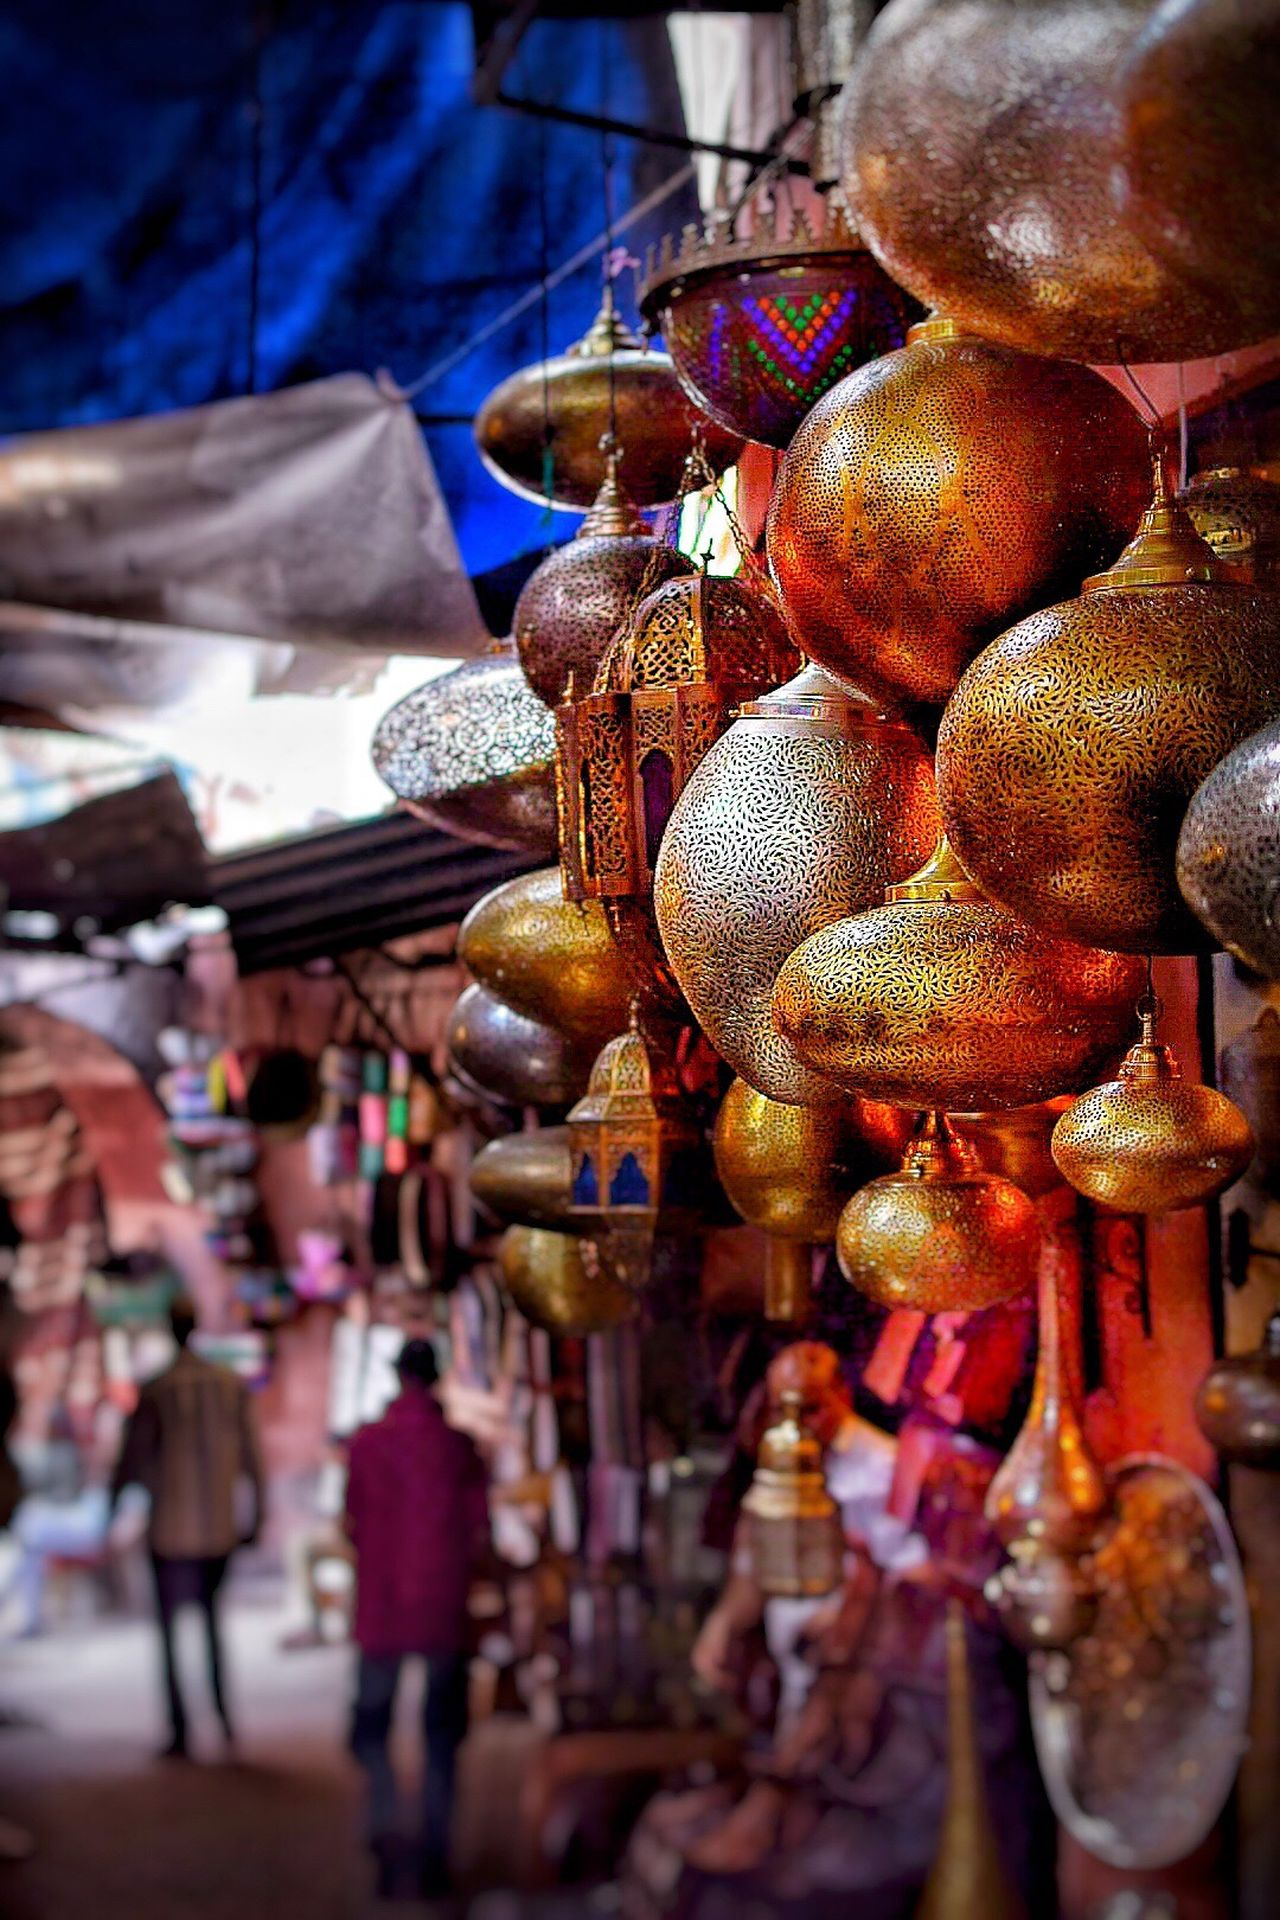 Hanging Large Group Of Objects Market For Sale Variation Choice Retail  Abundance No People Close-up Day Outdoors Marrakech